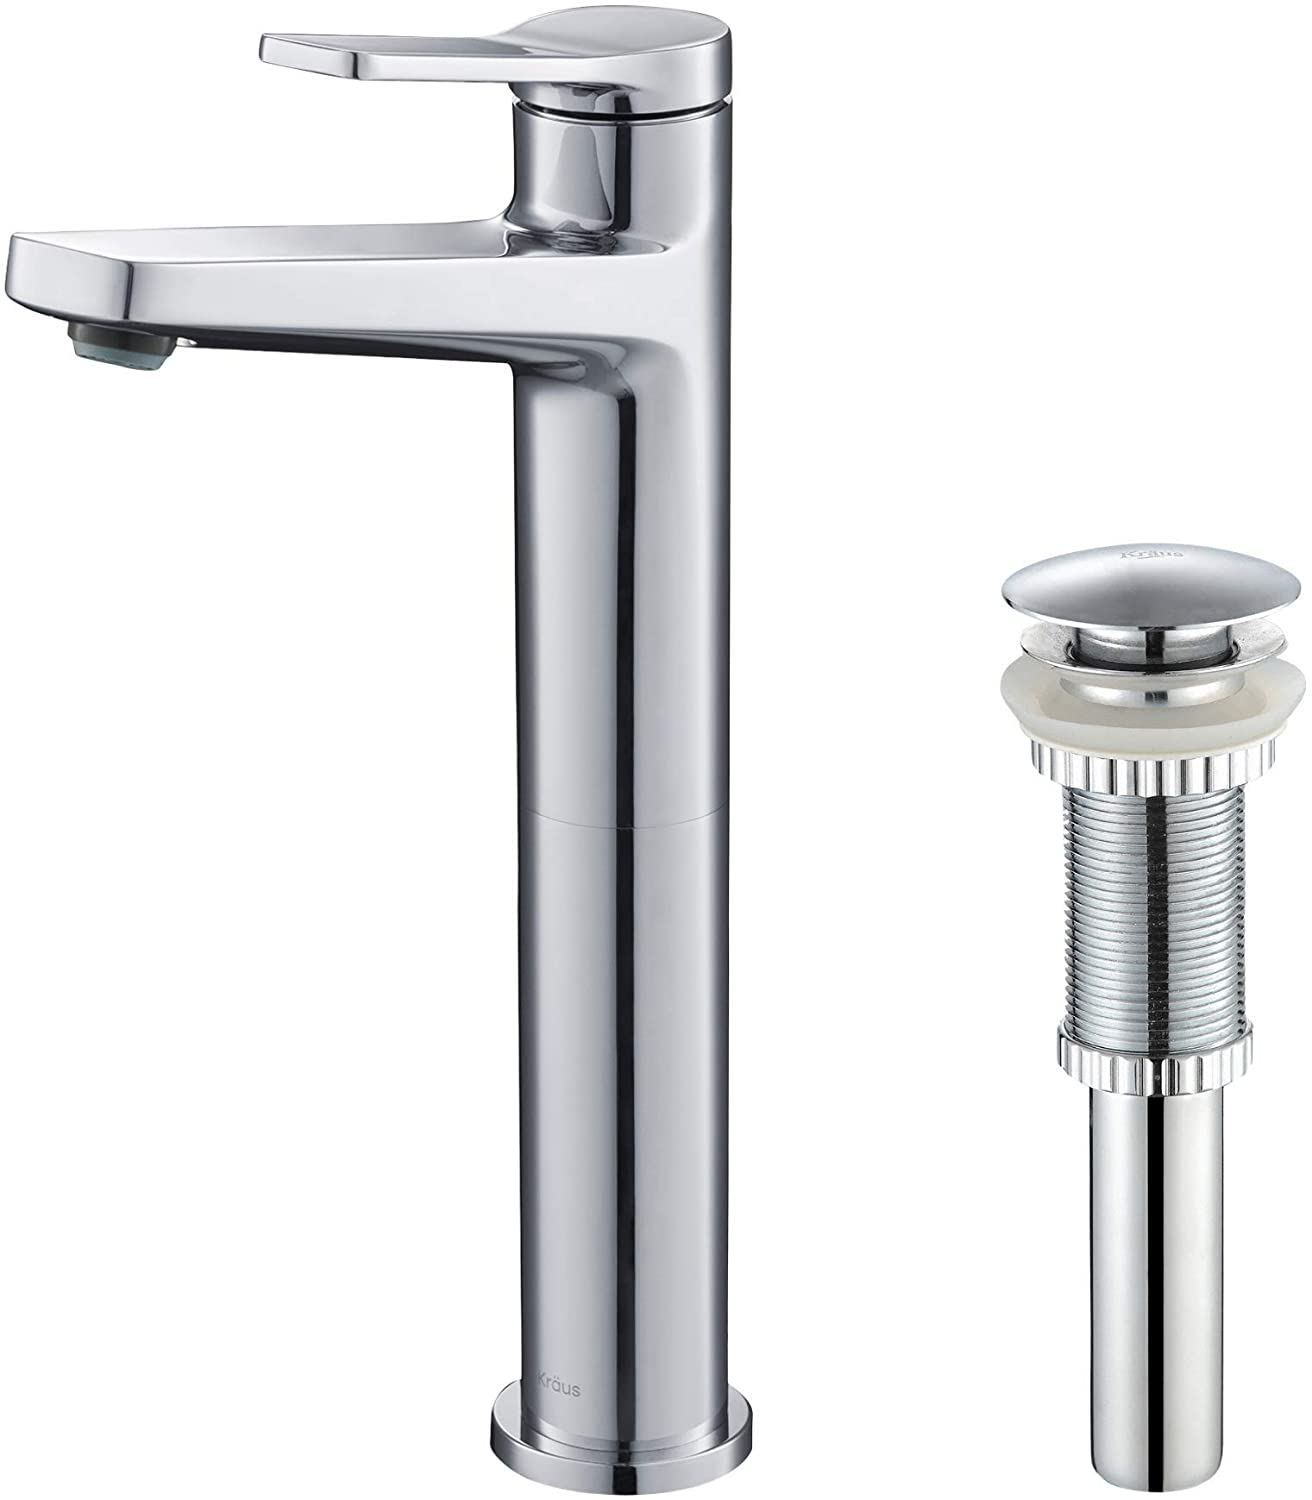 Kraus KVF-1400CH-PU-10CH Indy Single Handle Vessel Bathroom Faucet and Pop Up Drain, Chrome